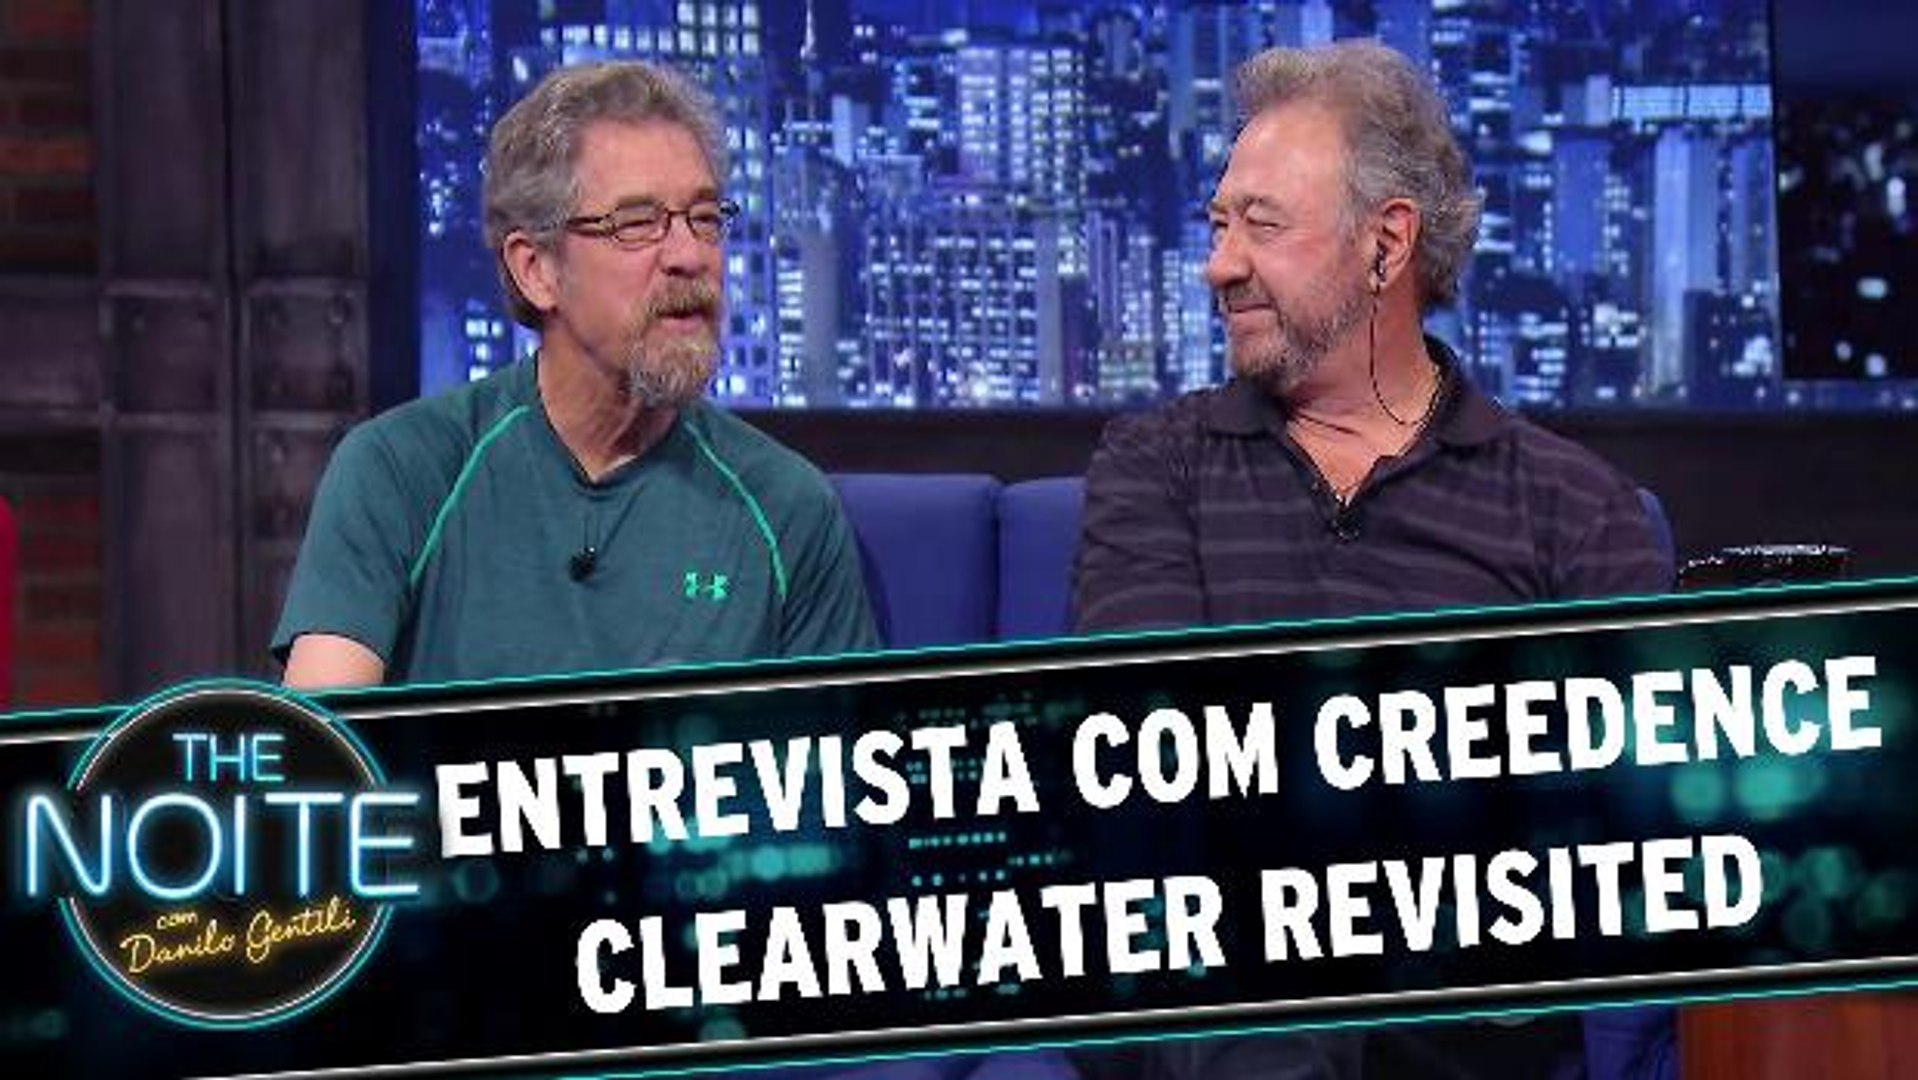 Entrevista com Creedence Clearwater Revisited